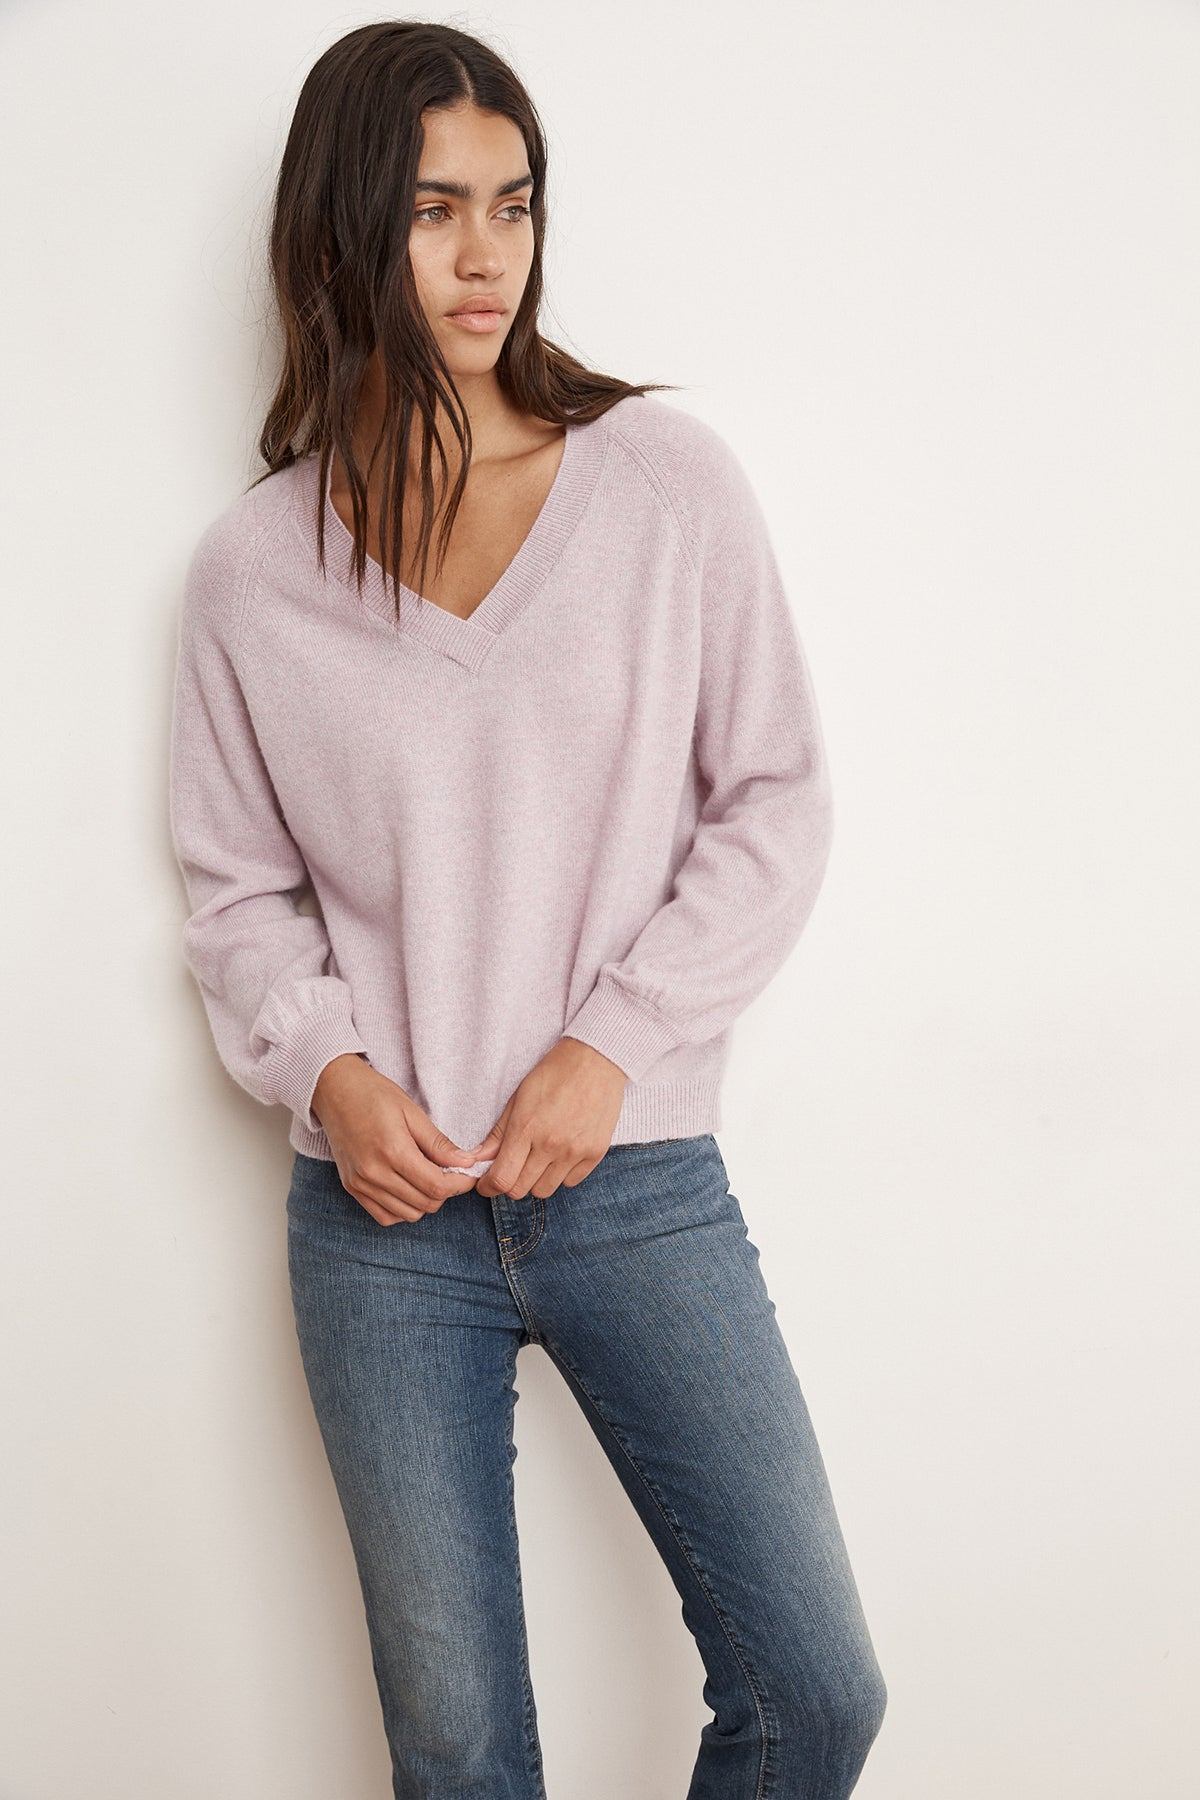 KARAH CASHMERE V-NECK SWEATER